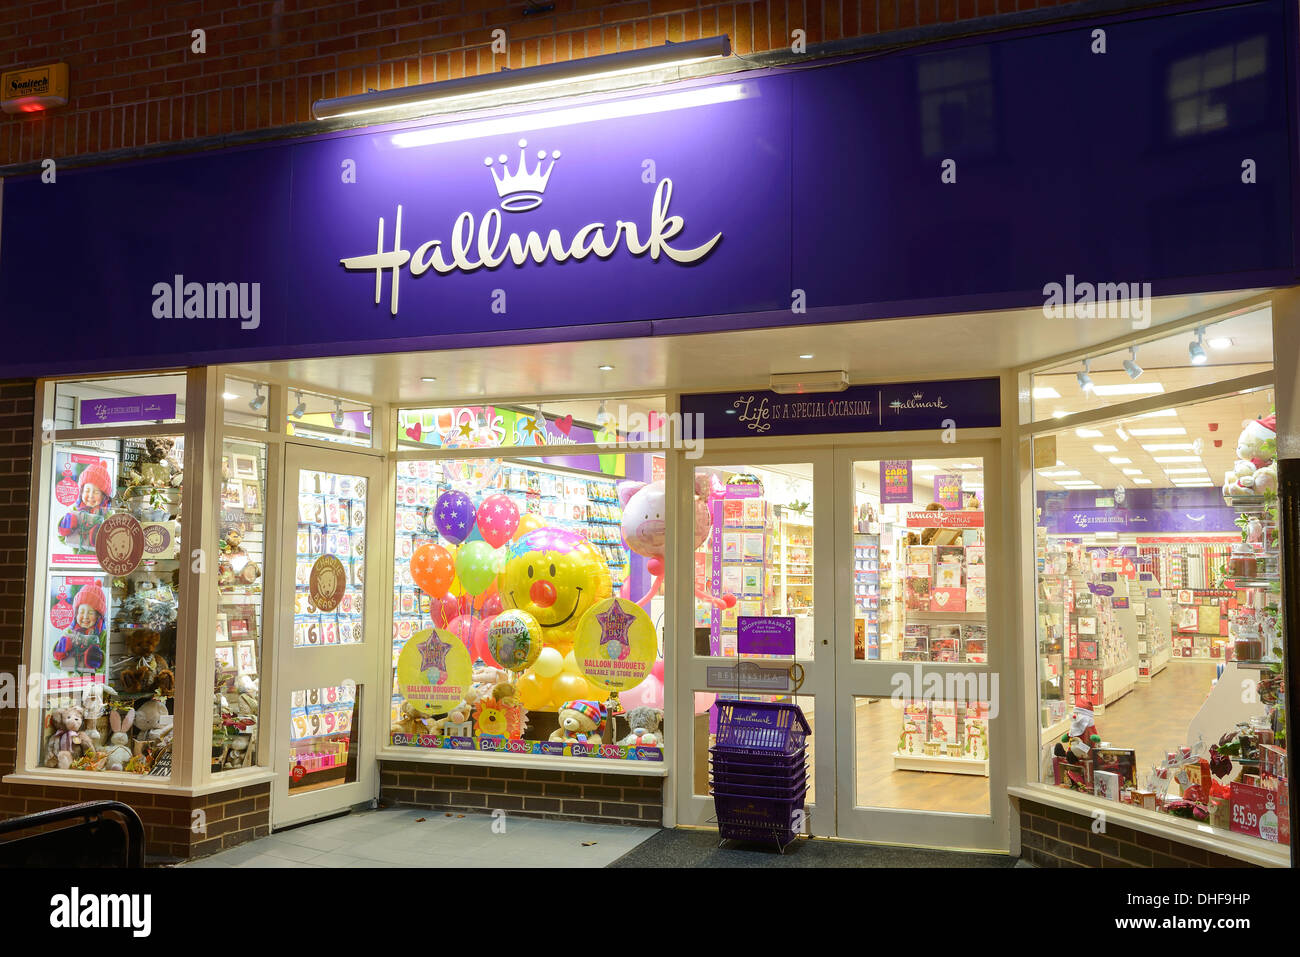 Hallmark cards retail shop front - Stock Image